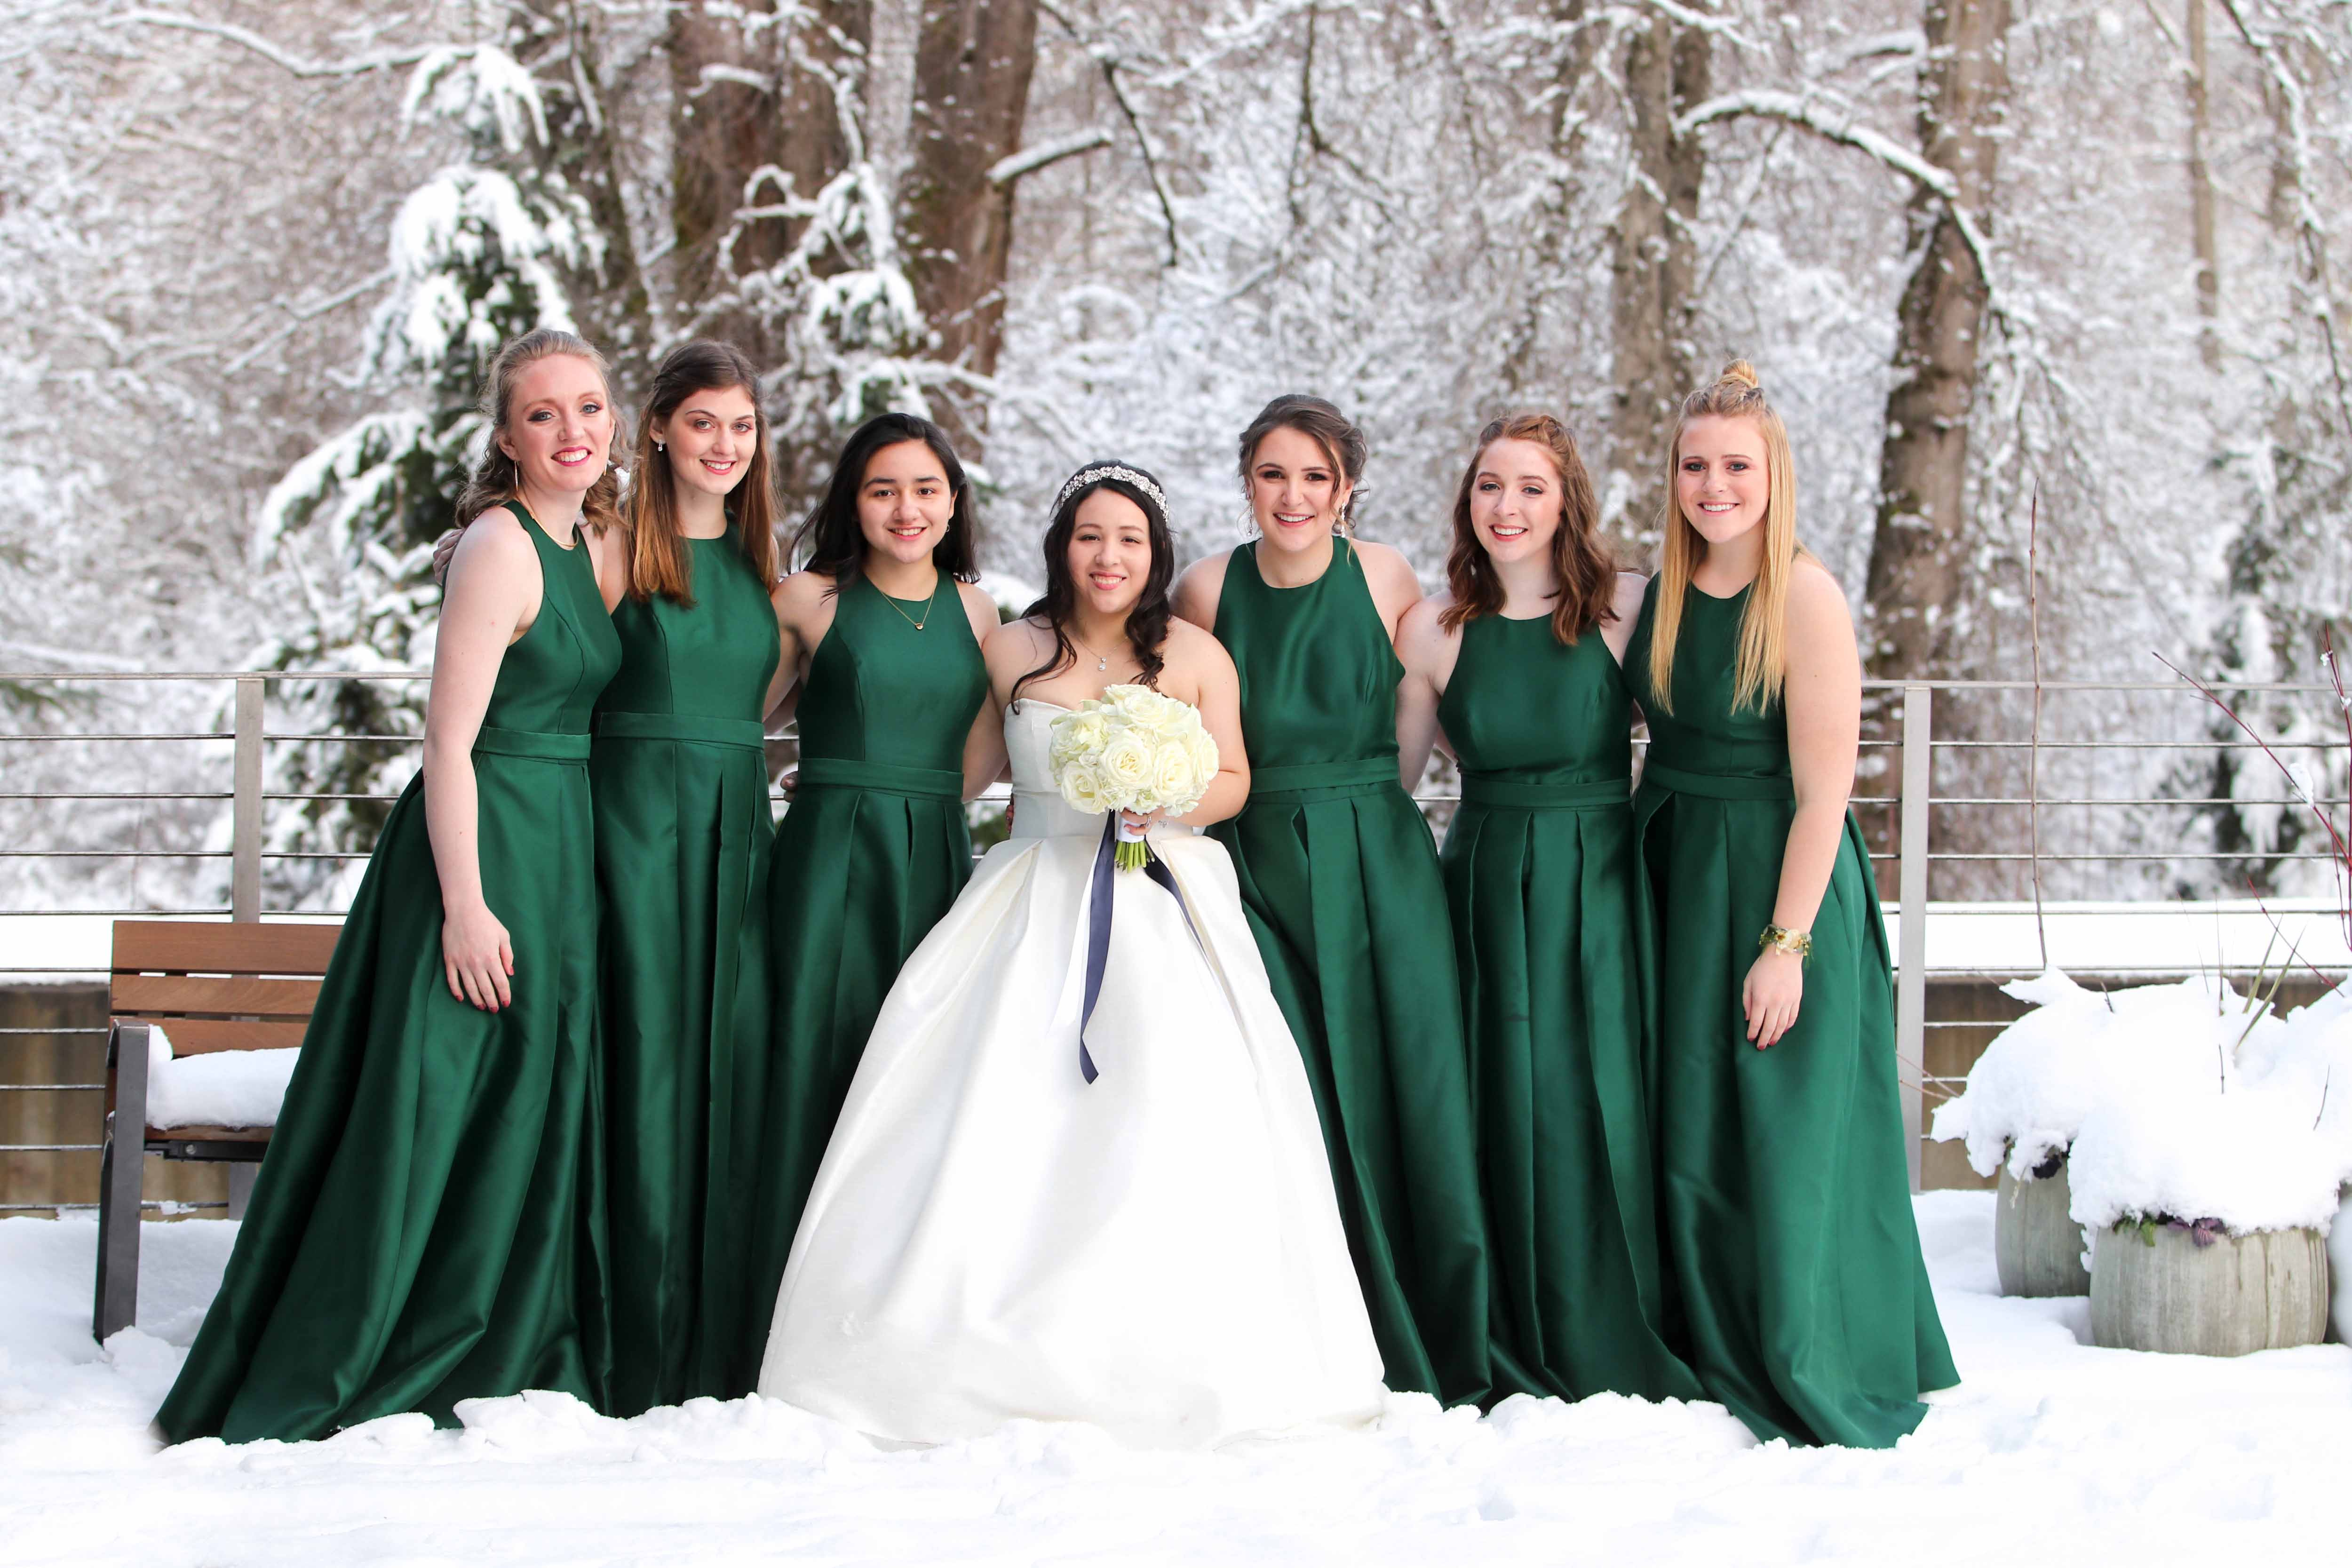 bride and bridesmaids in emerald green dresses pose in the snow